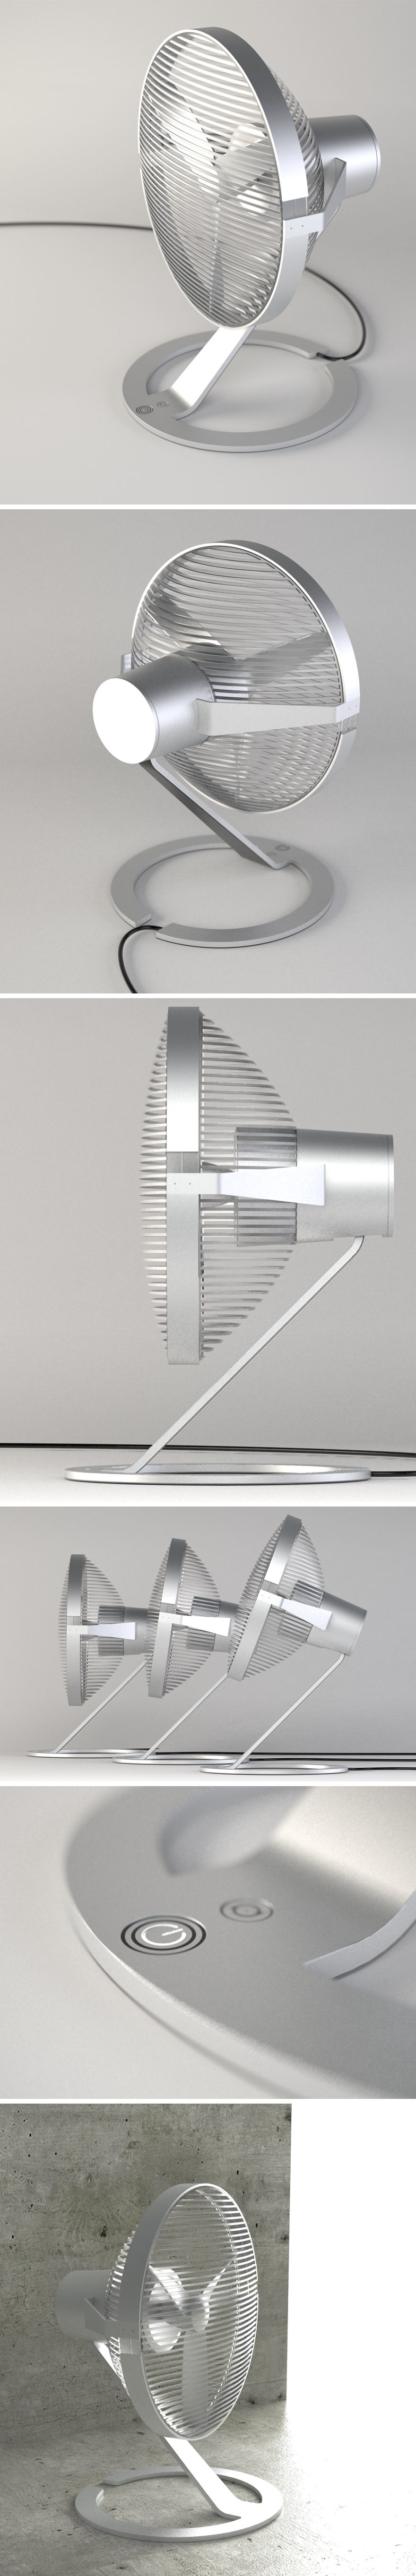 Design of a fan with a high-tech rationalist aesthetic, the body is aluminum while the grid is in satin Polycarbonate.